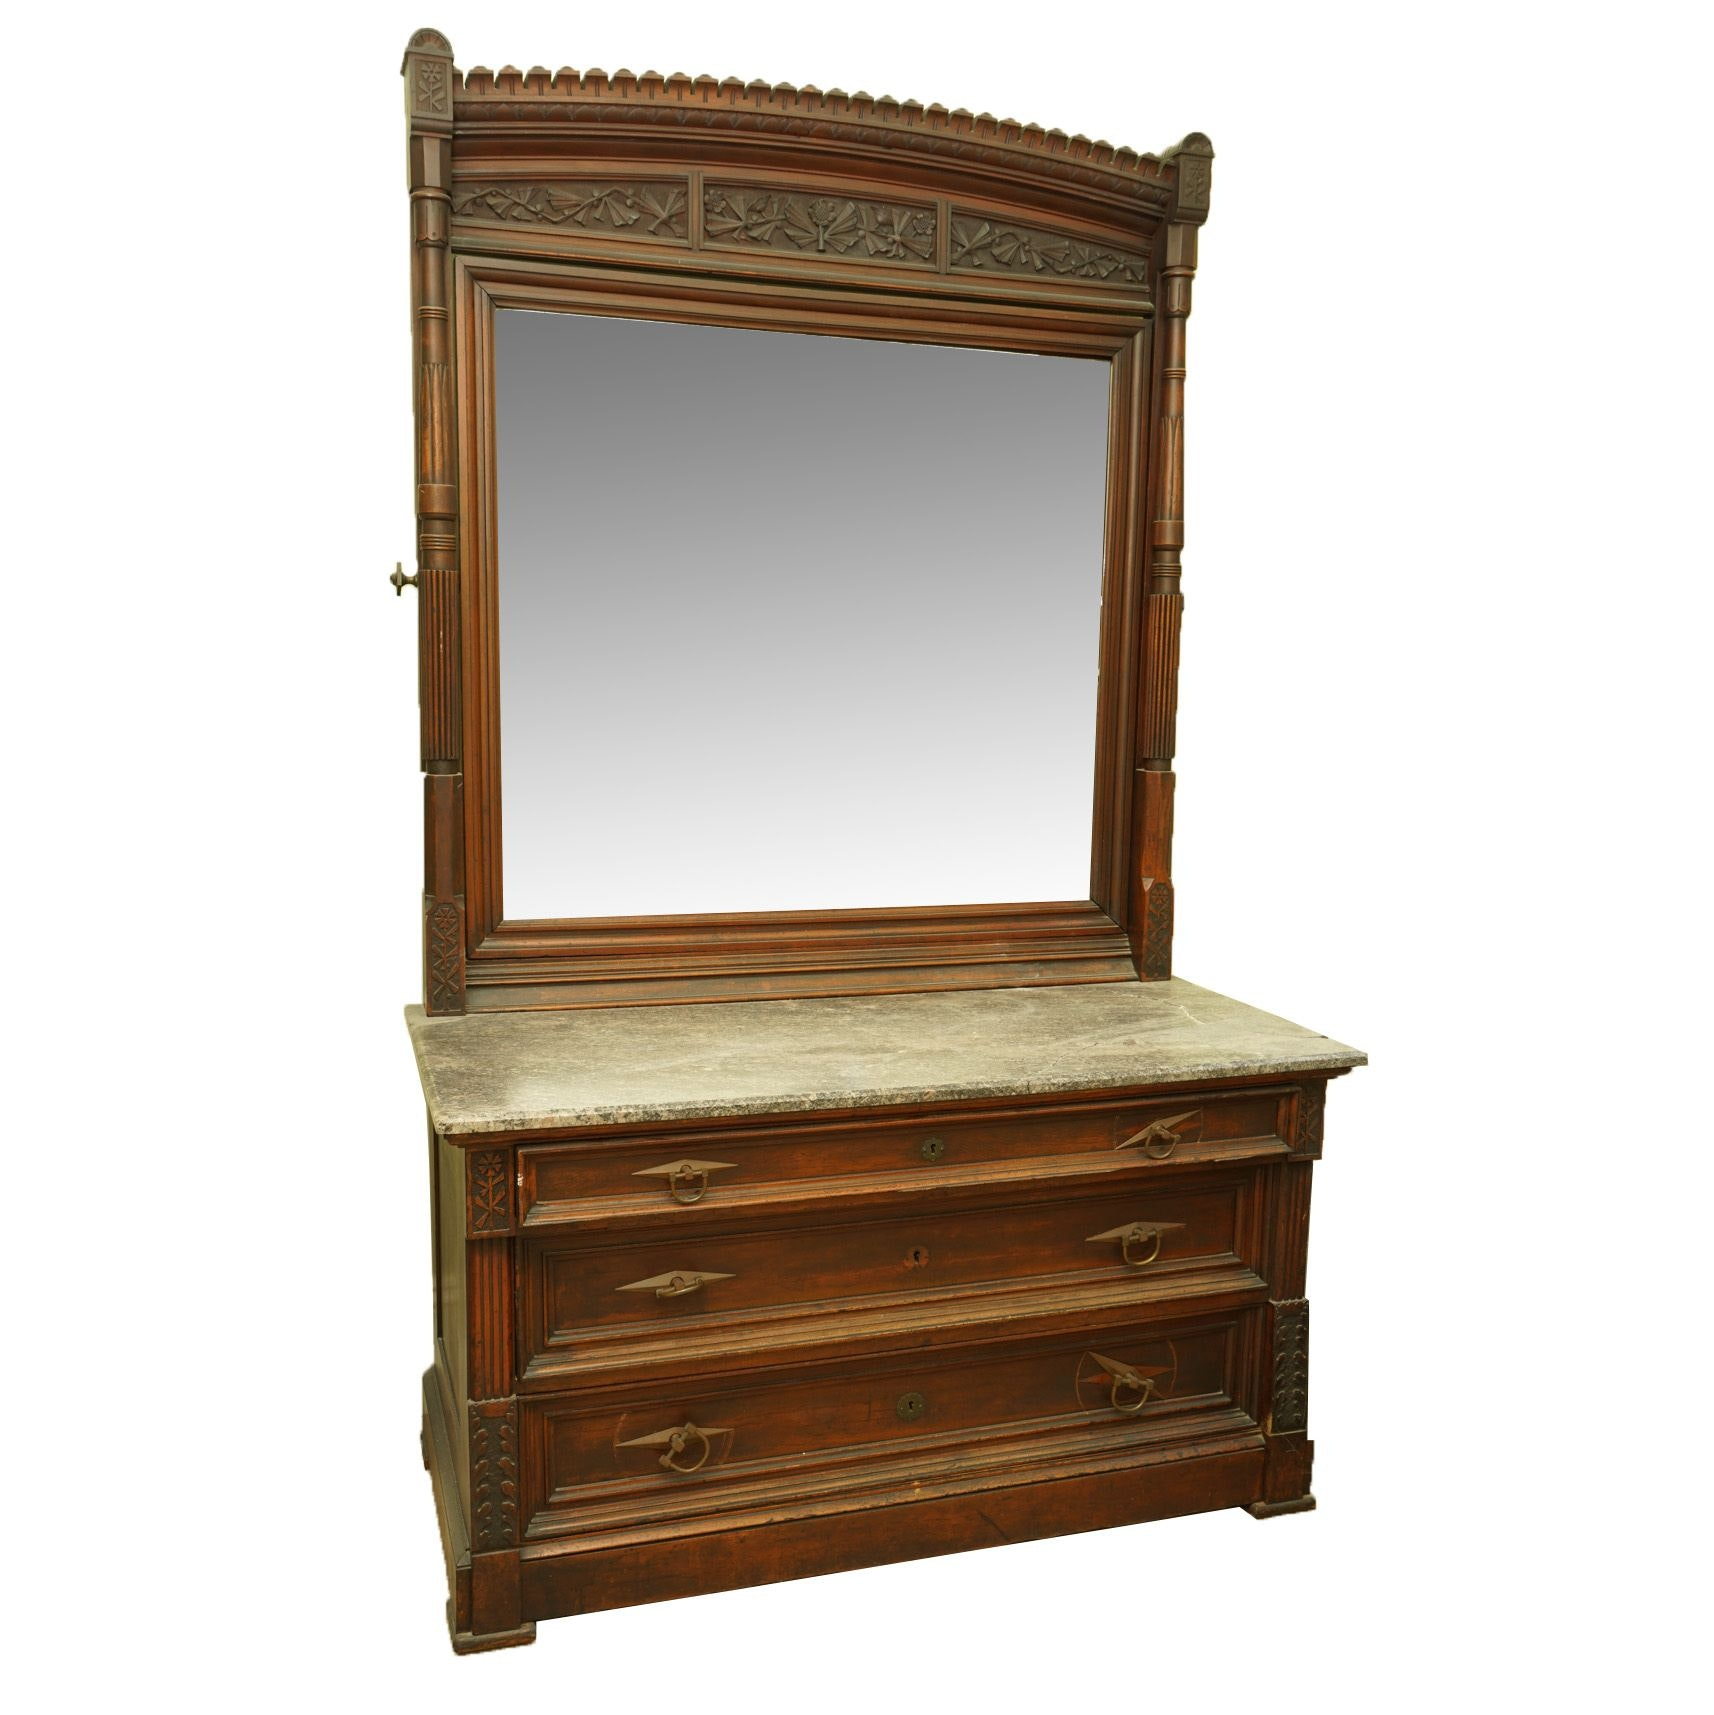 Antique Eastlake Mahogany Stone Top Chest of Drawers with Mirror